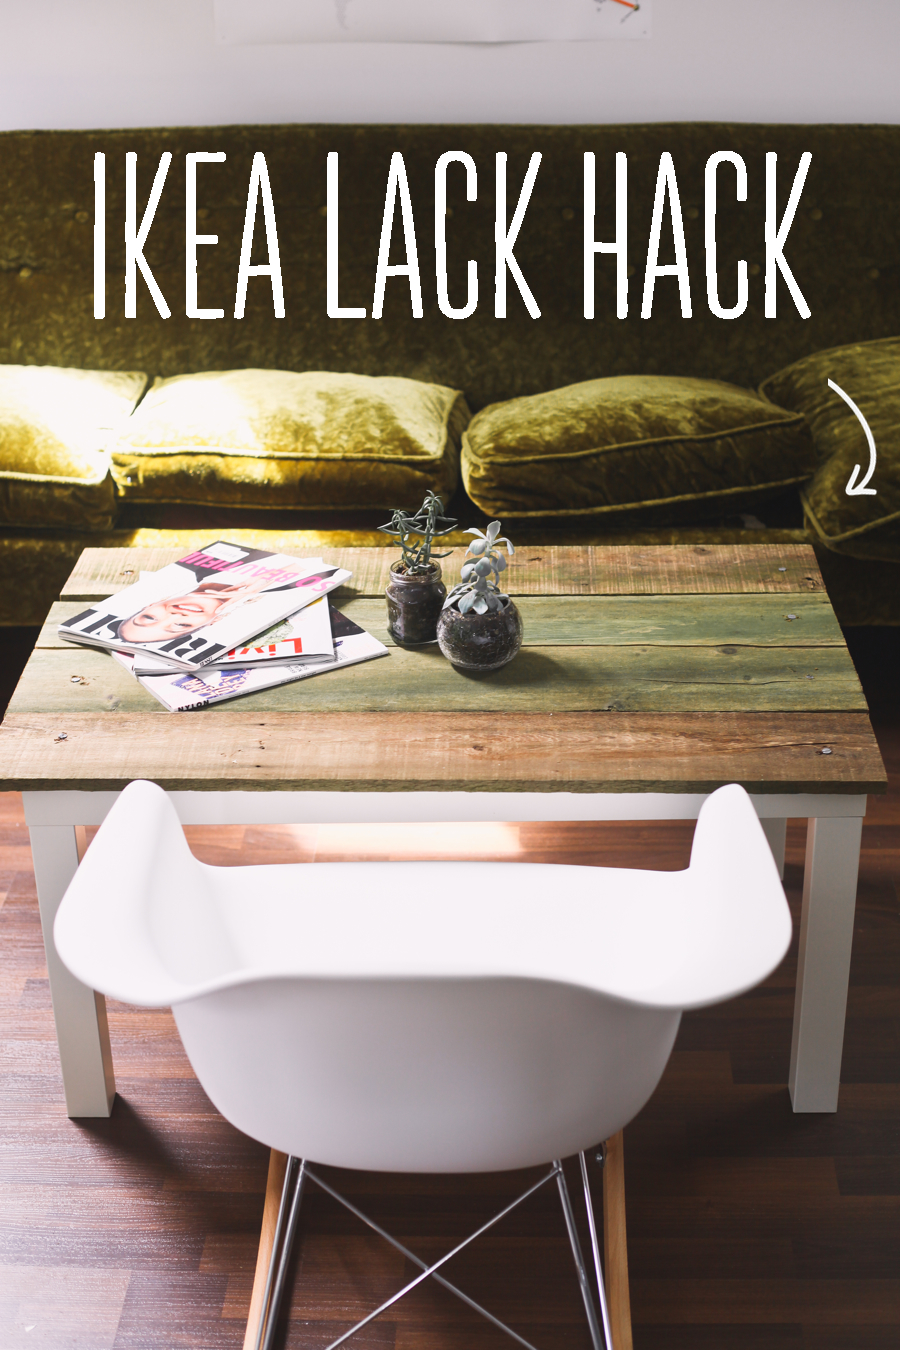 Sensational Ikea Hacks 3 Easy Steps To Create Your Own Ikea Coffee Home Interior And Landscaping Transignezvosmurscom